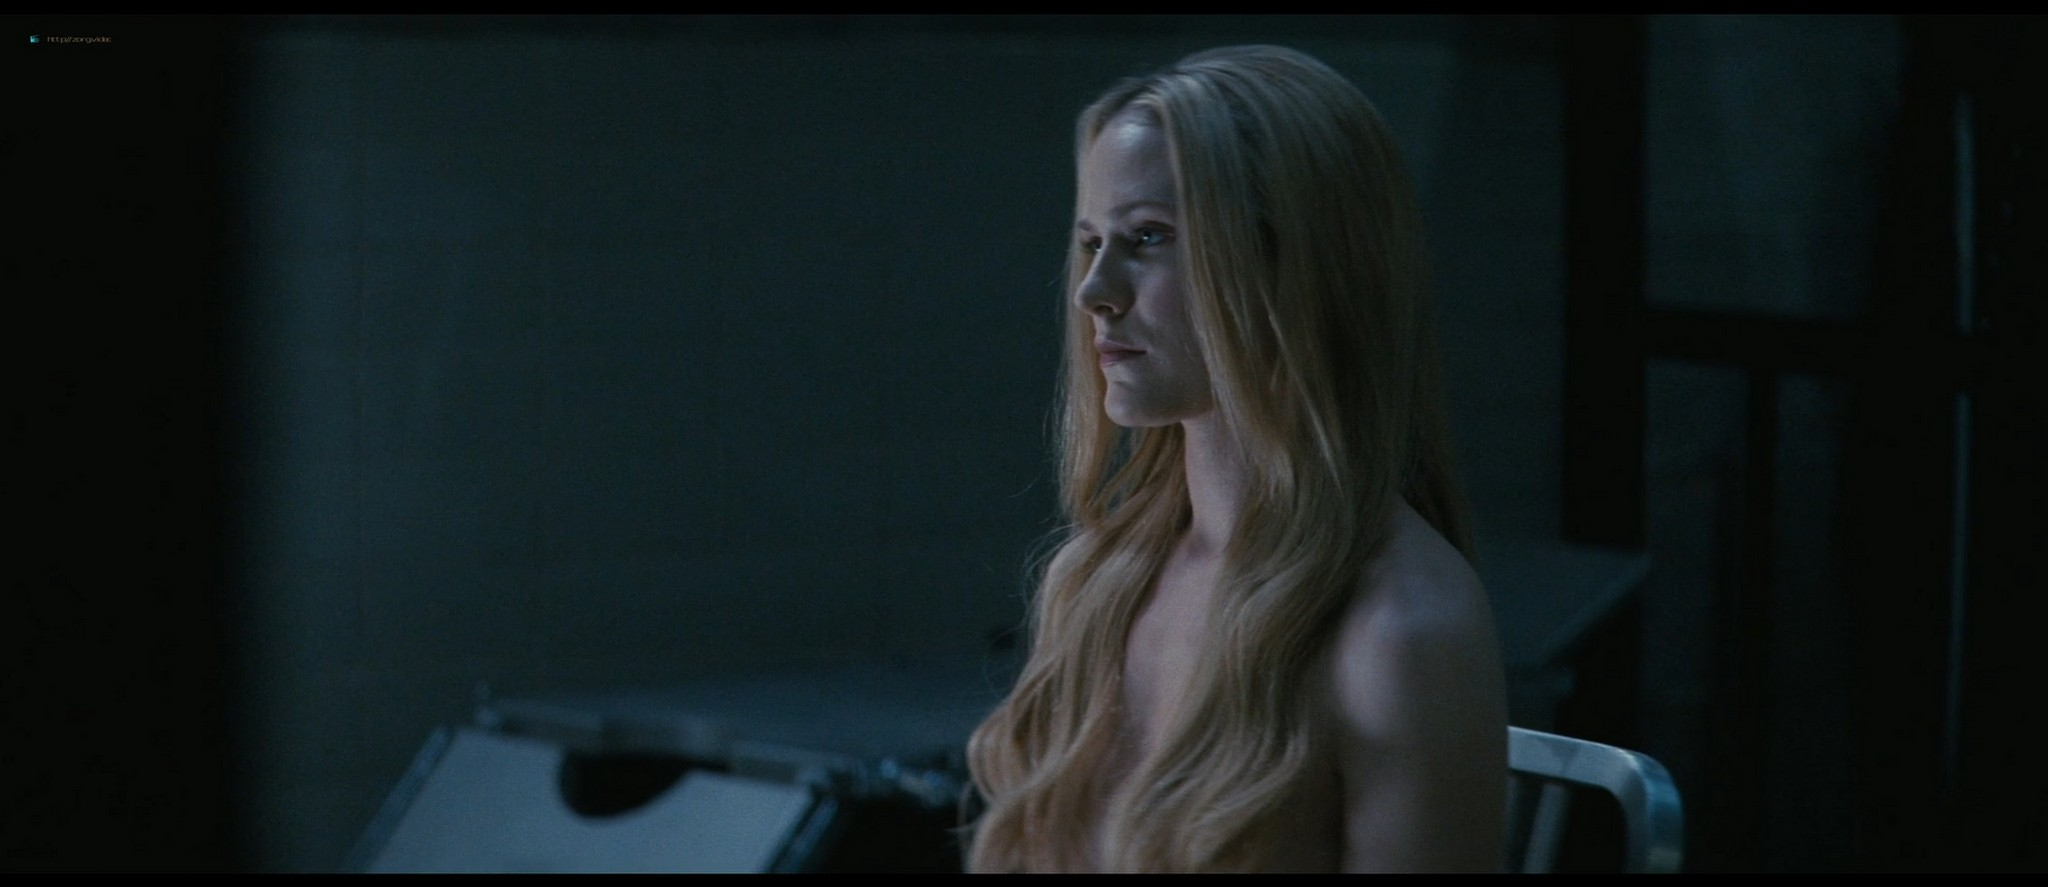 Evan Rachel Wood nude butt - Westworld (2020) s3e6 HD 1080p (7)